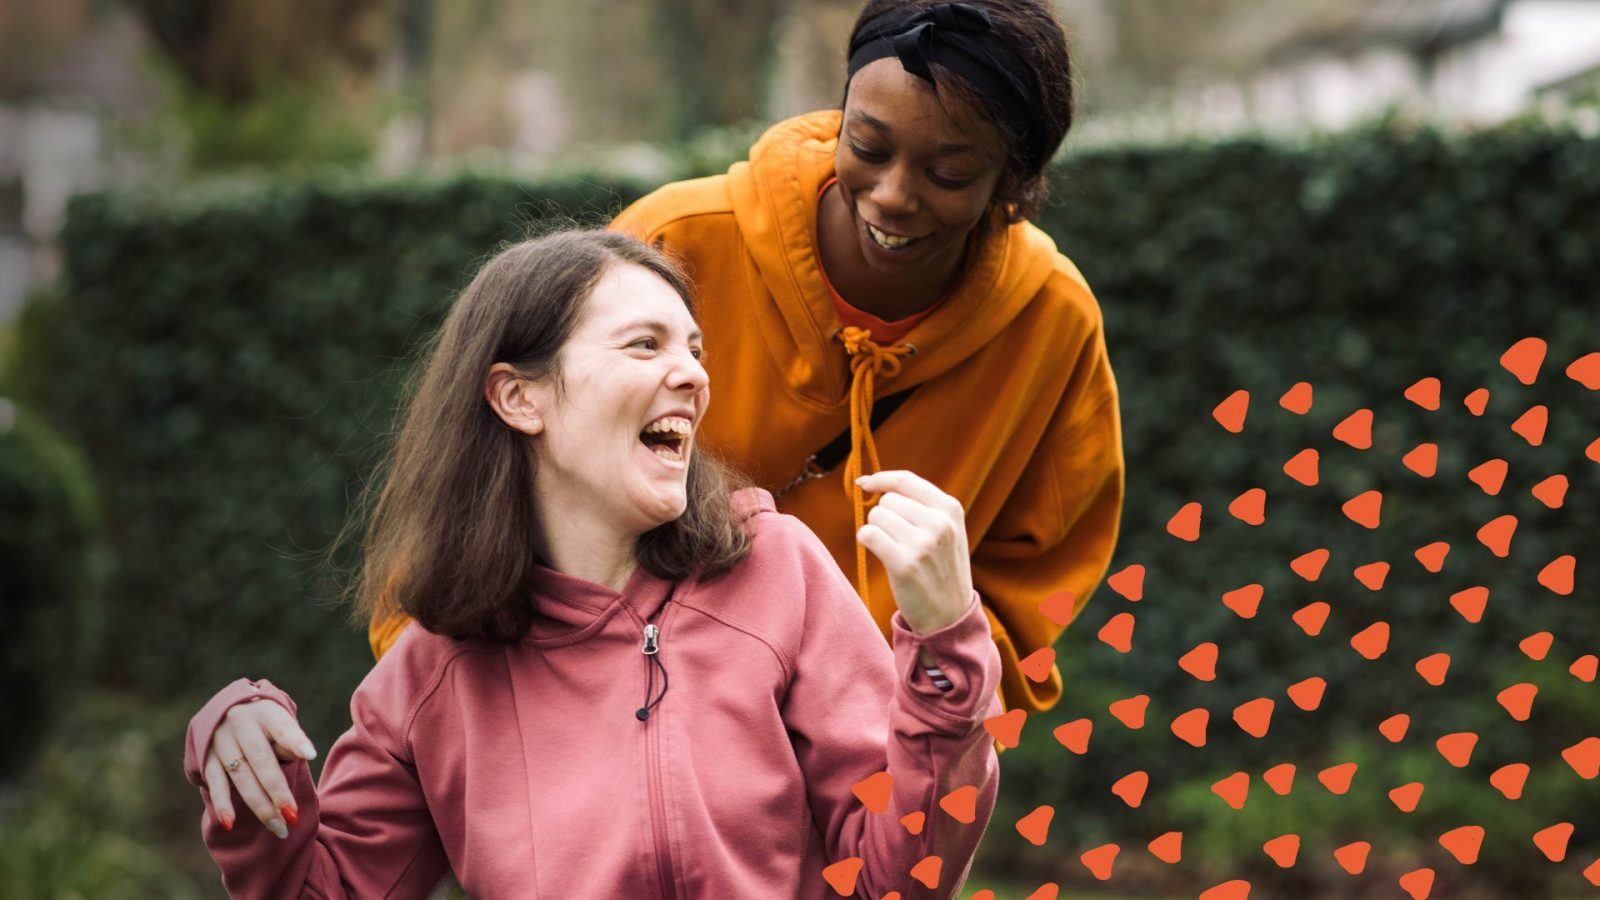 Carer and service user at Active Care